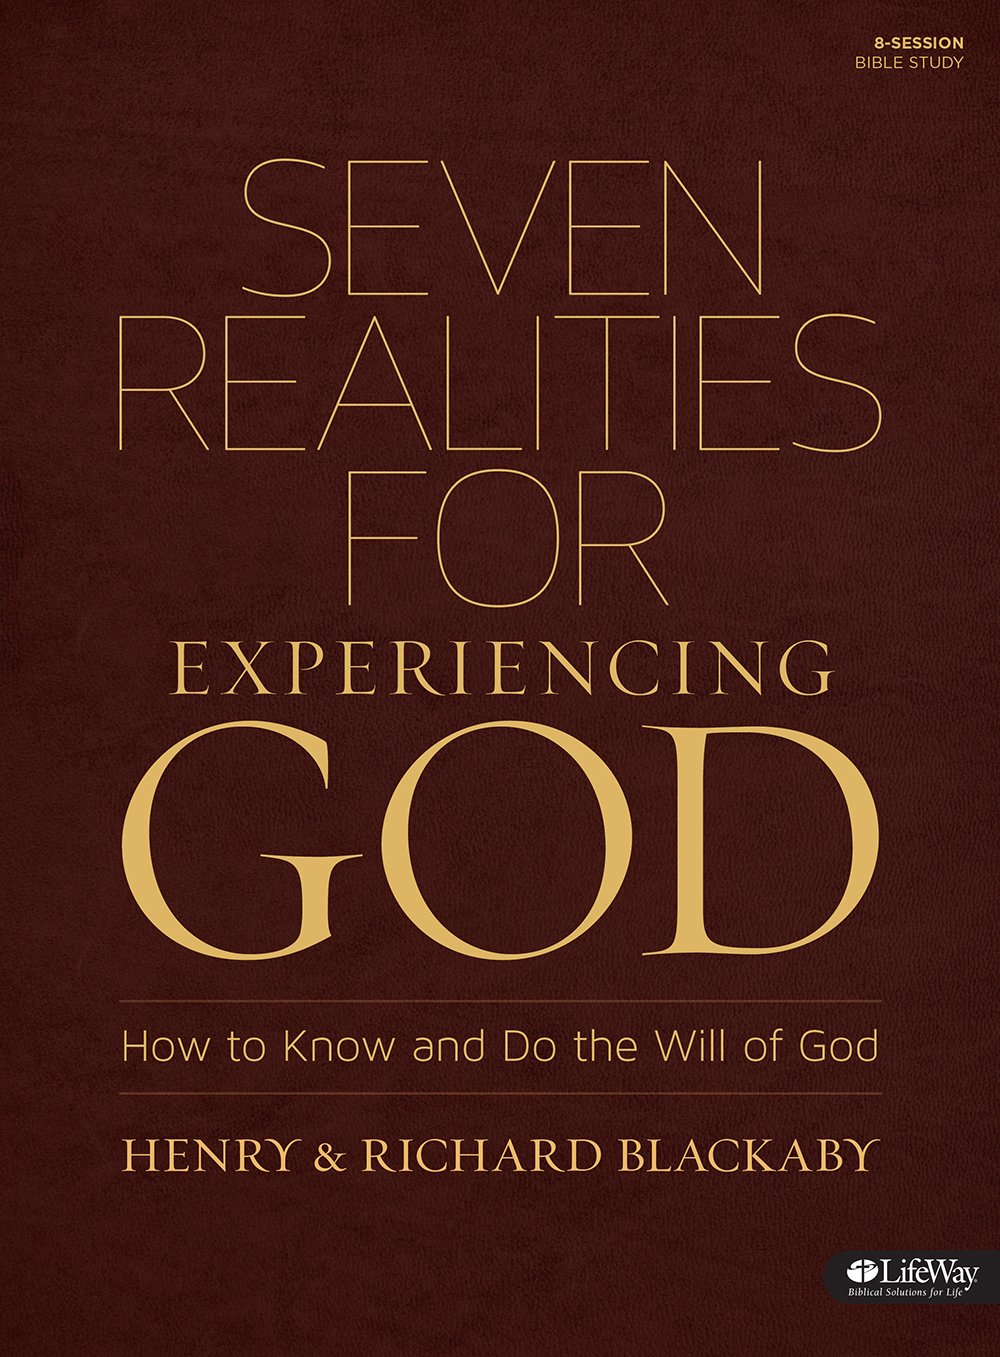 Seven Realities for Experiencing God: How to Know and Do the Will of God:  Henry T. Blackaby, Richard Blackaby: 9781430036555: Amazon.com: Books